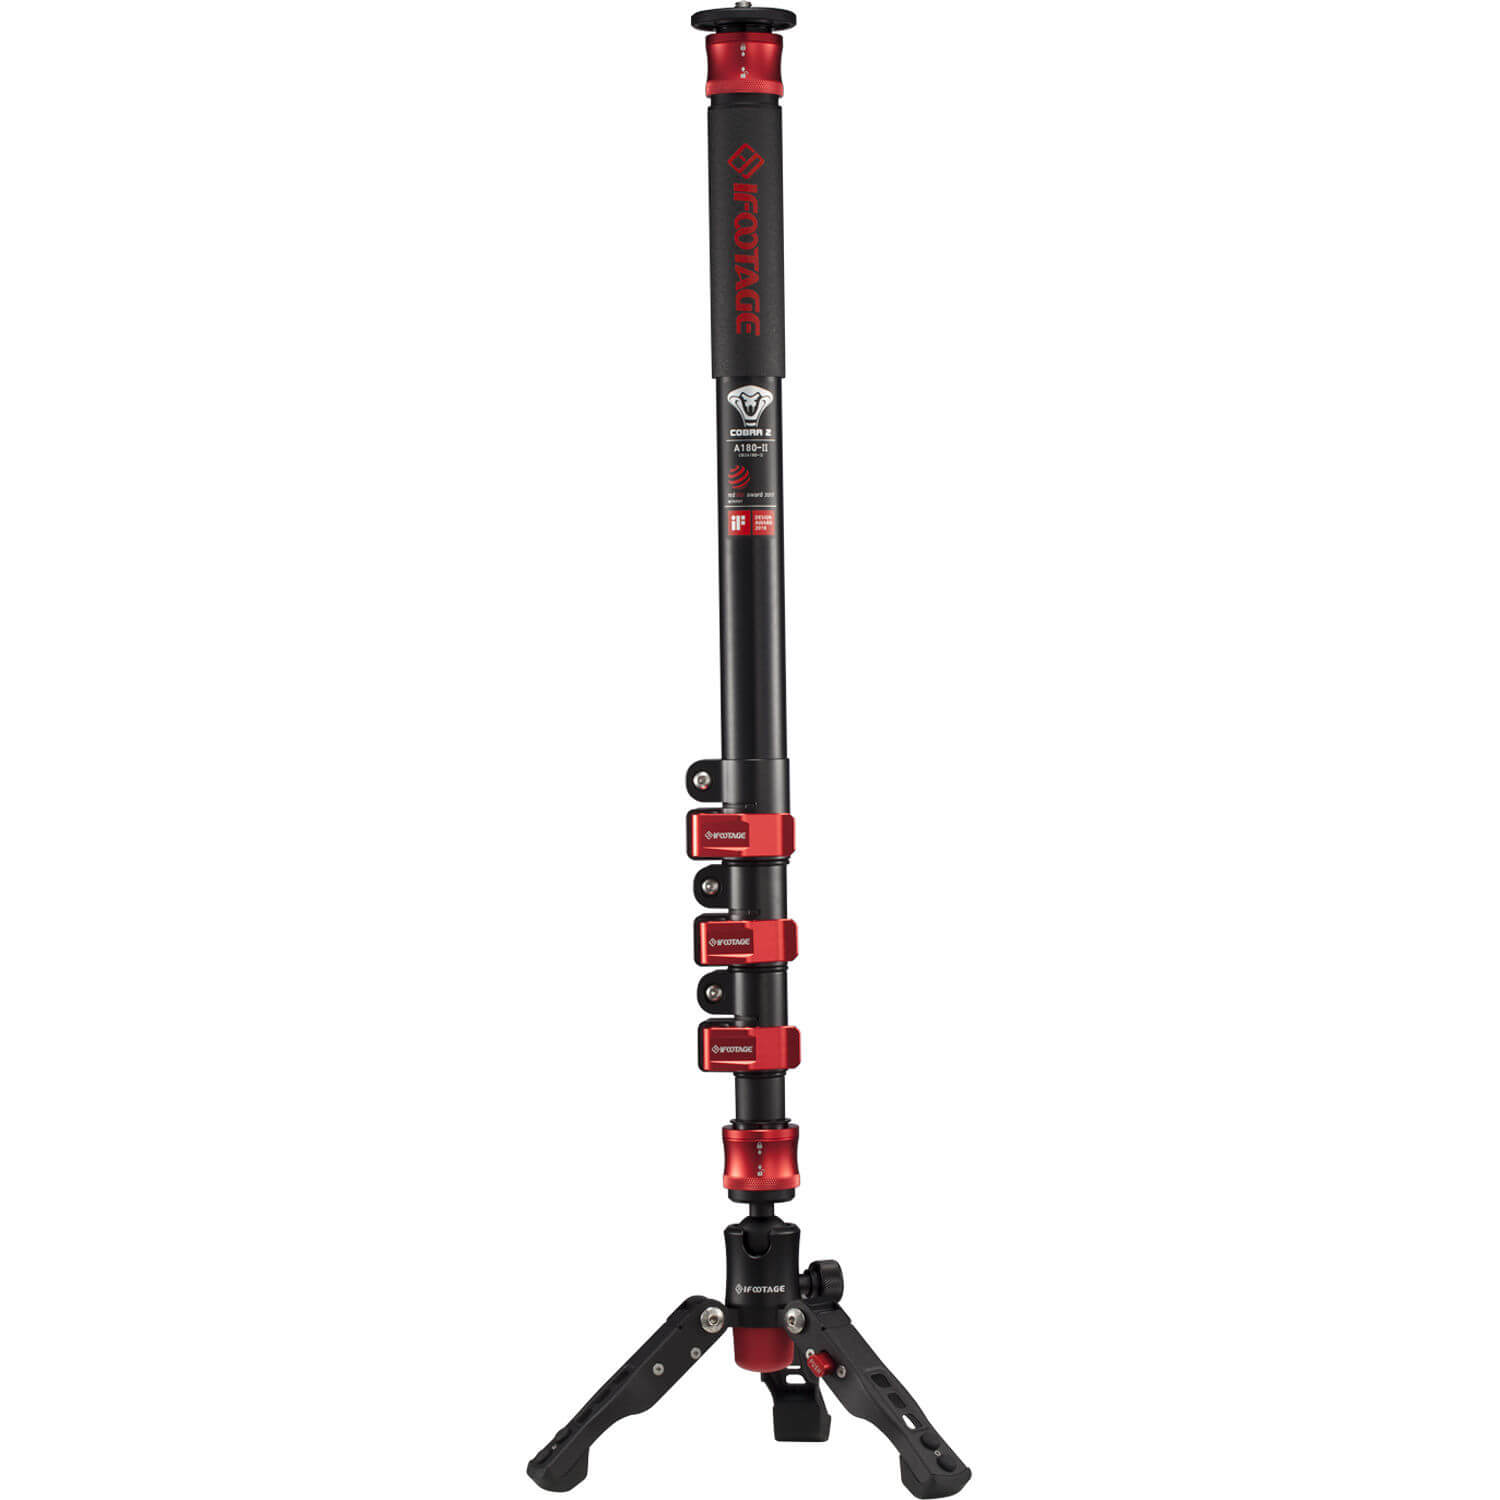 iFootage Cobra 2 A180 II Aluminum Monopod with Low Profile Tripod 2